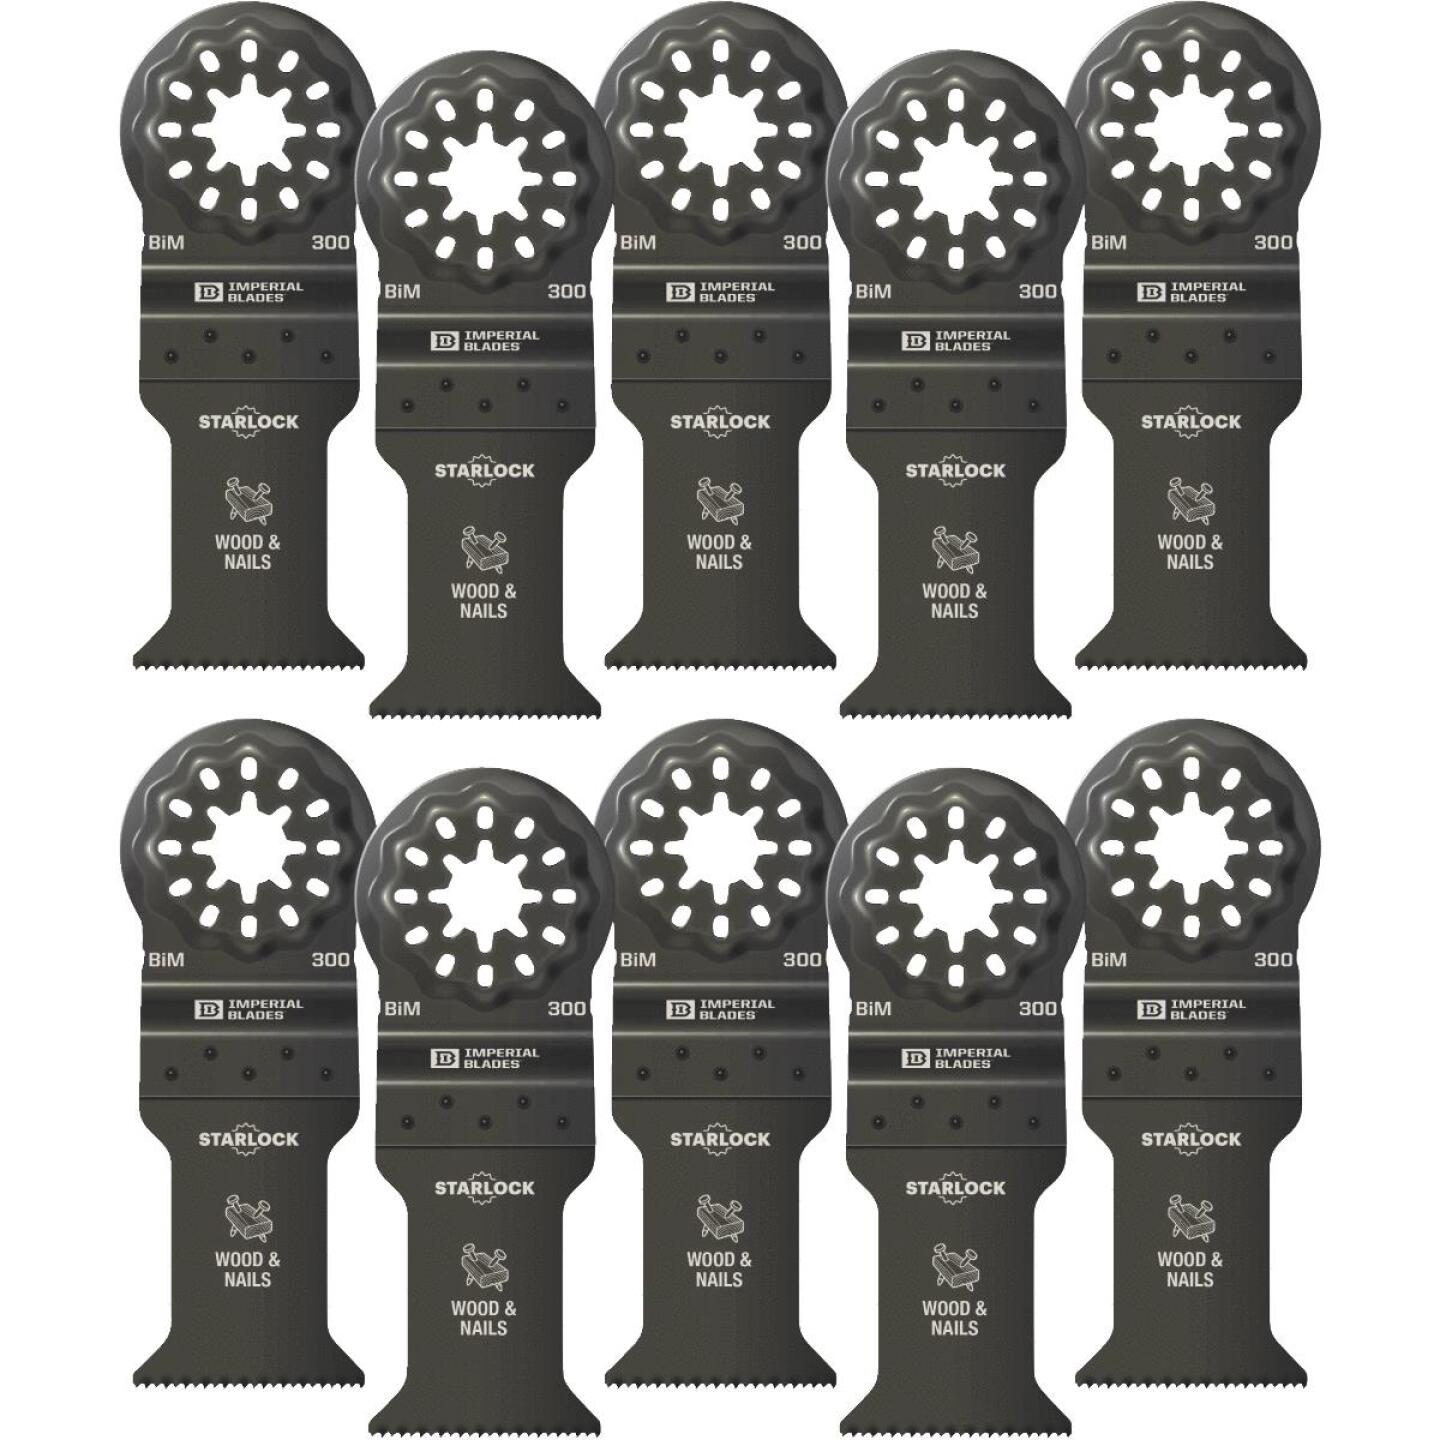 Imperial Blades Starlock 1-3/8 In. 18 TPI Wood/Nail Oscillating Blade (10-Pack) Image 1